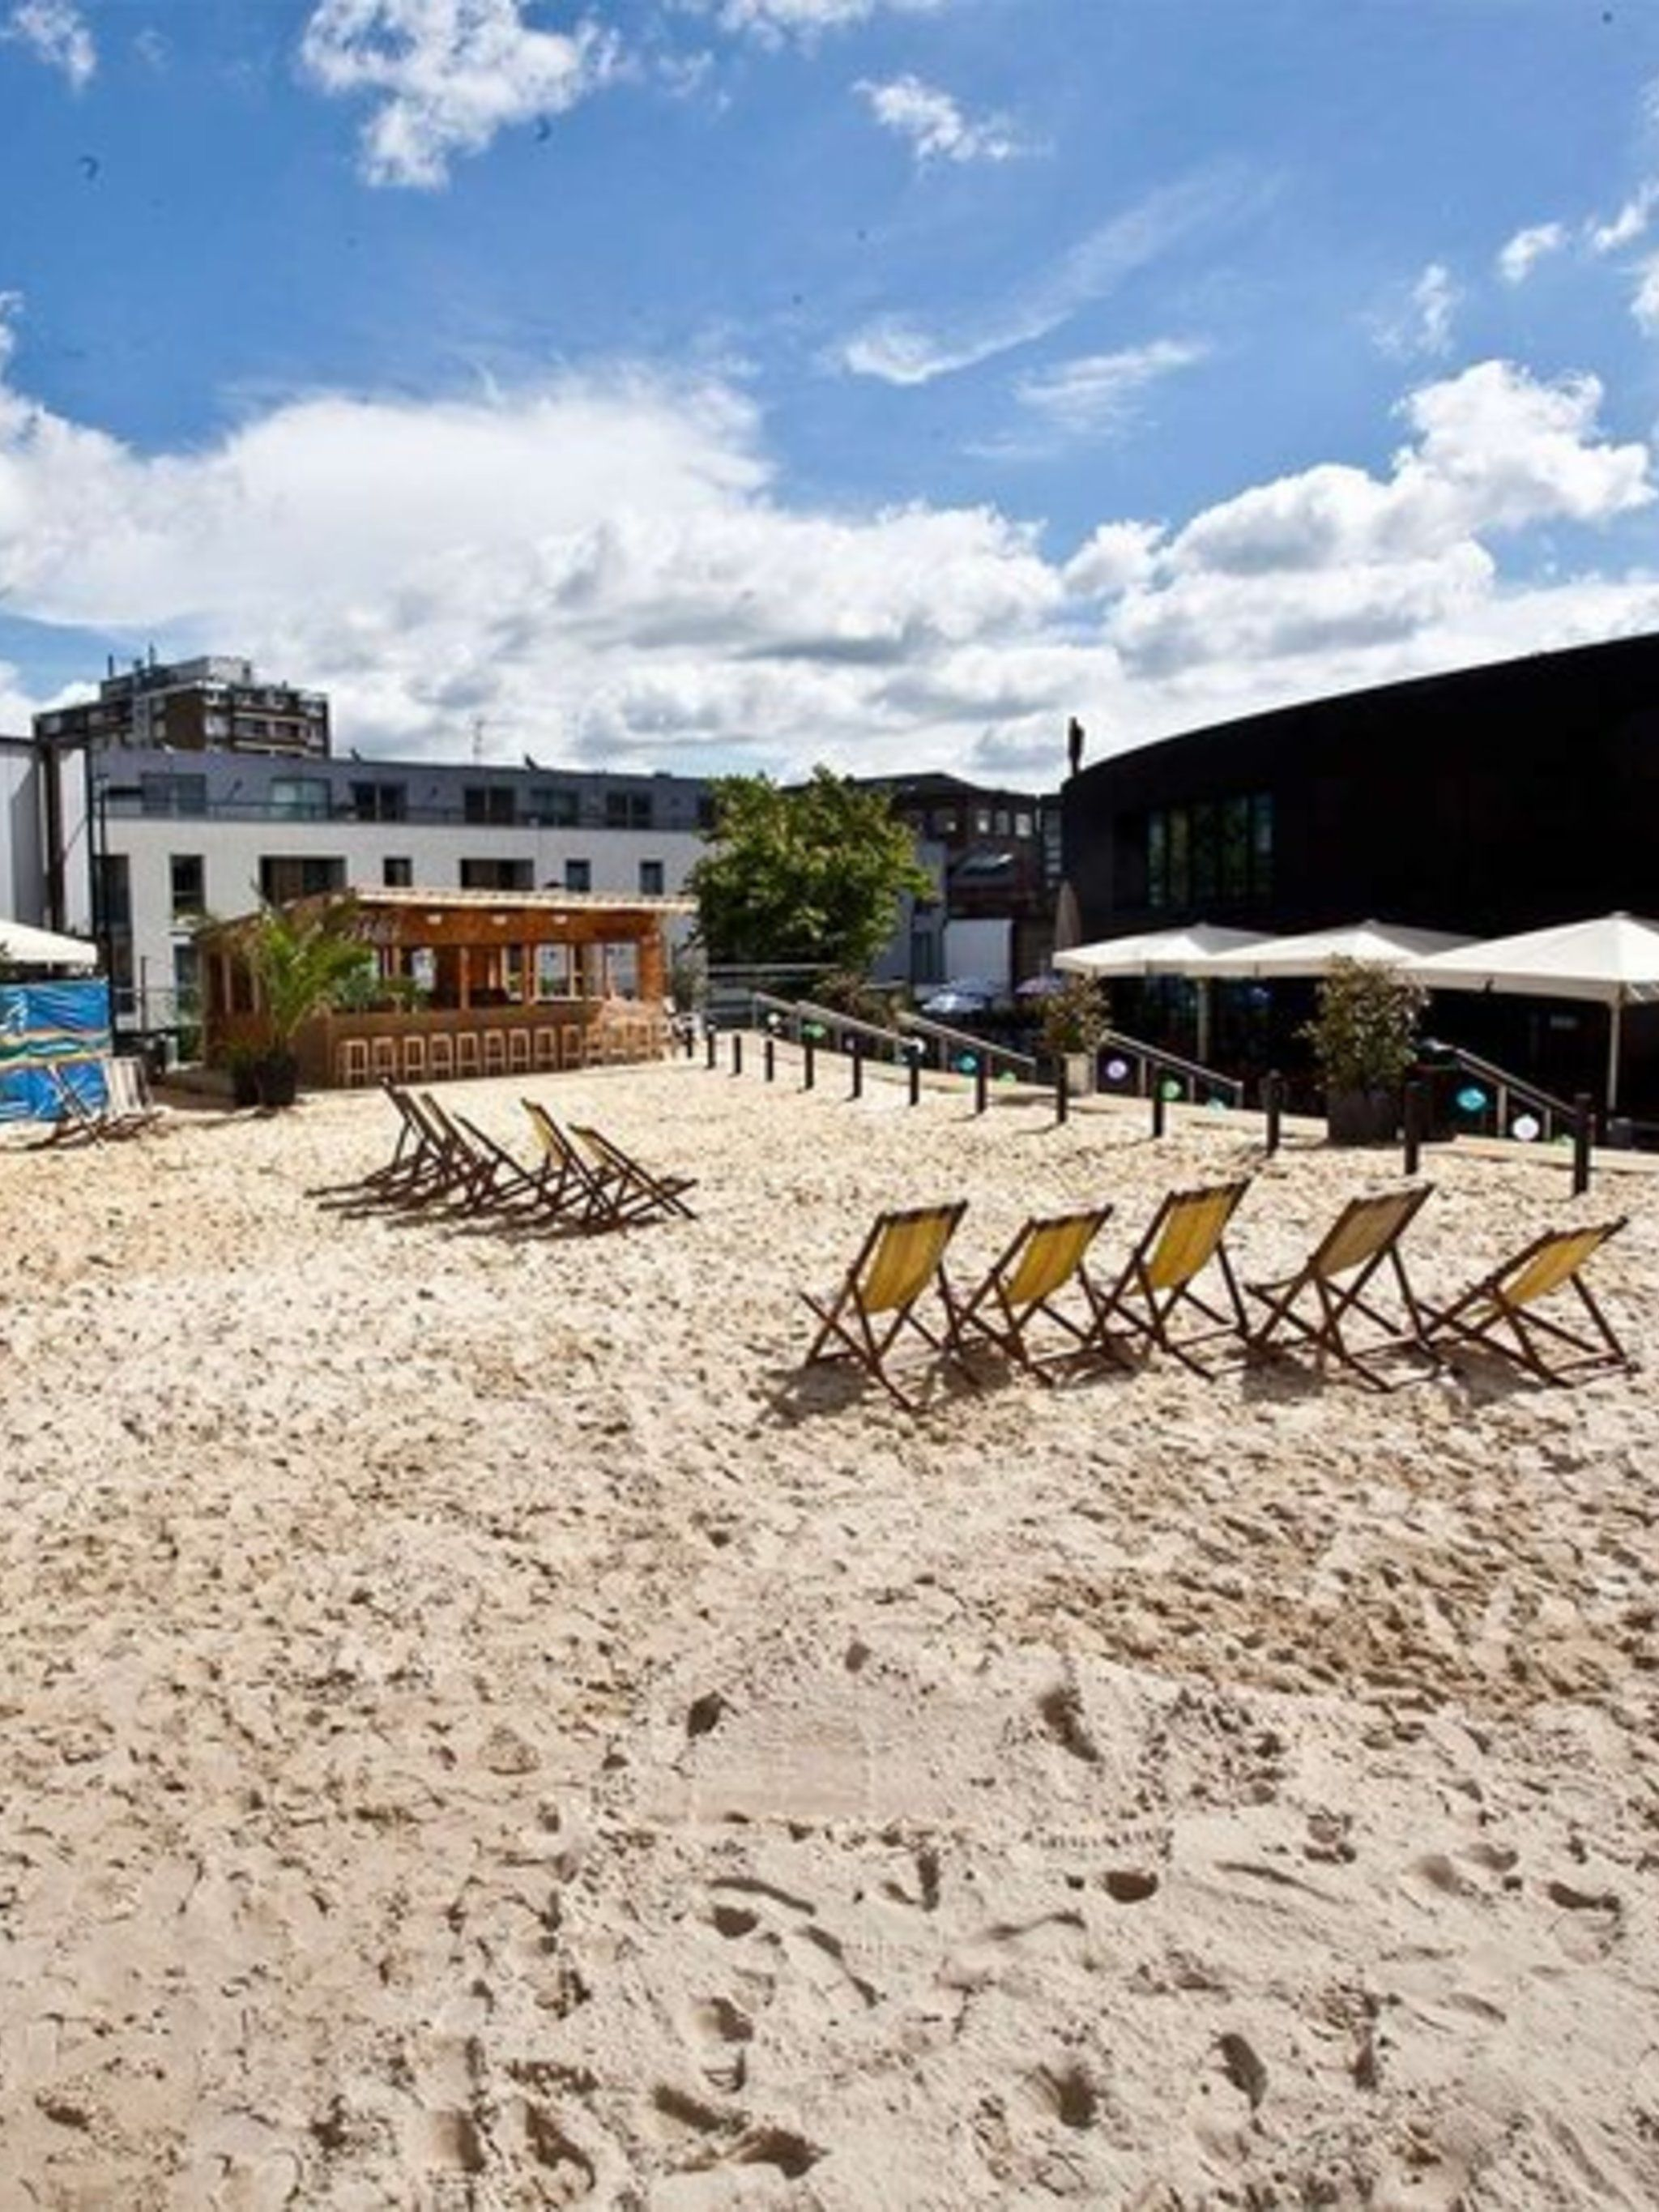 DAY OUT: Camden Beach    Summer in the city missing that certain something?  Get down to Camden, where from this Saturday the Roundhouse presents Camden Beach, a slice of sandy paradise nestled in the heart of NW1.  Tucked away on a sunny terrace, the 900